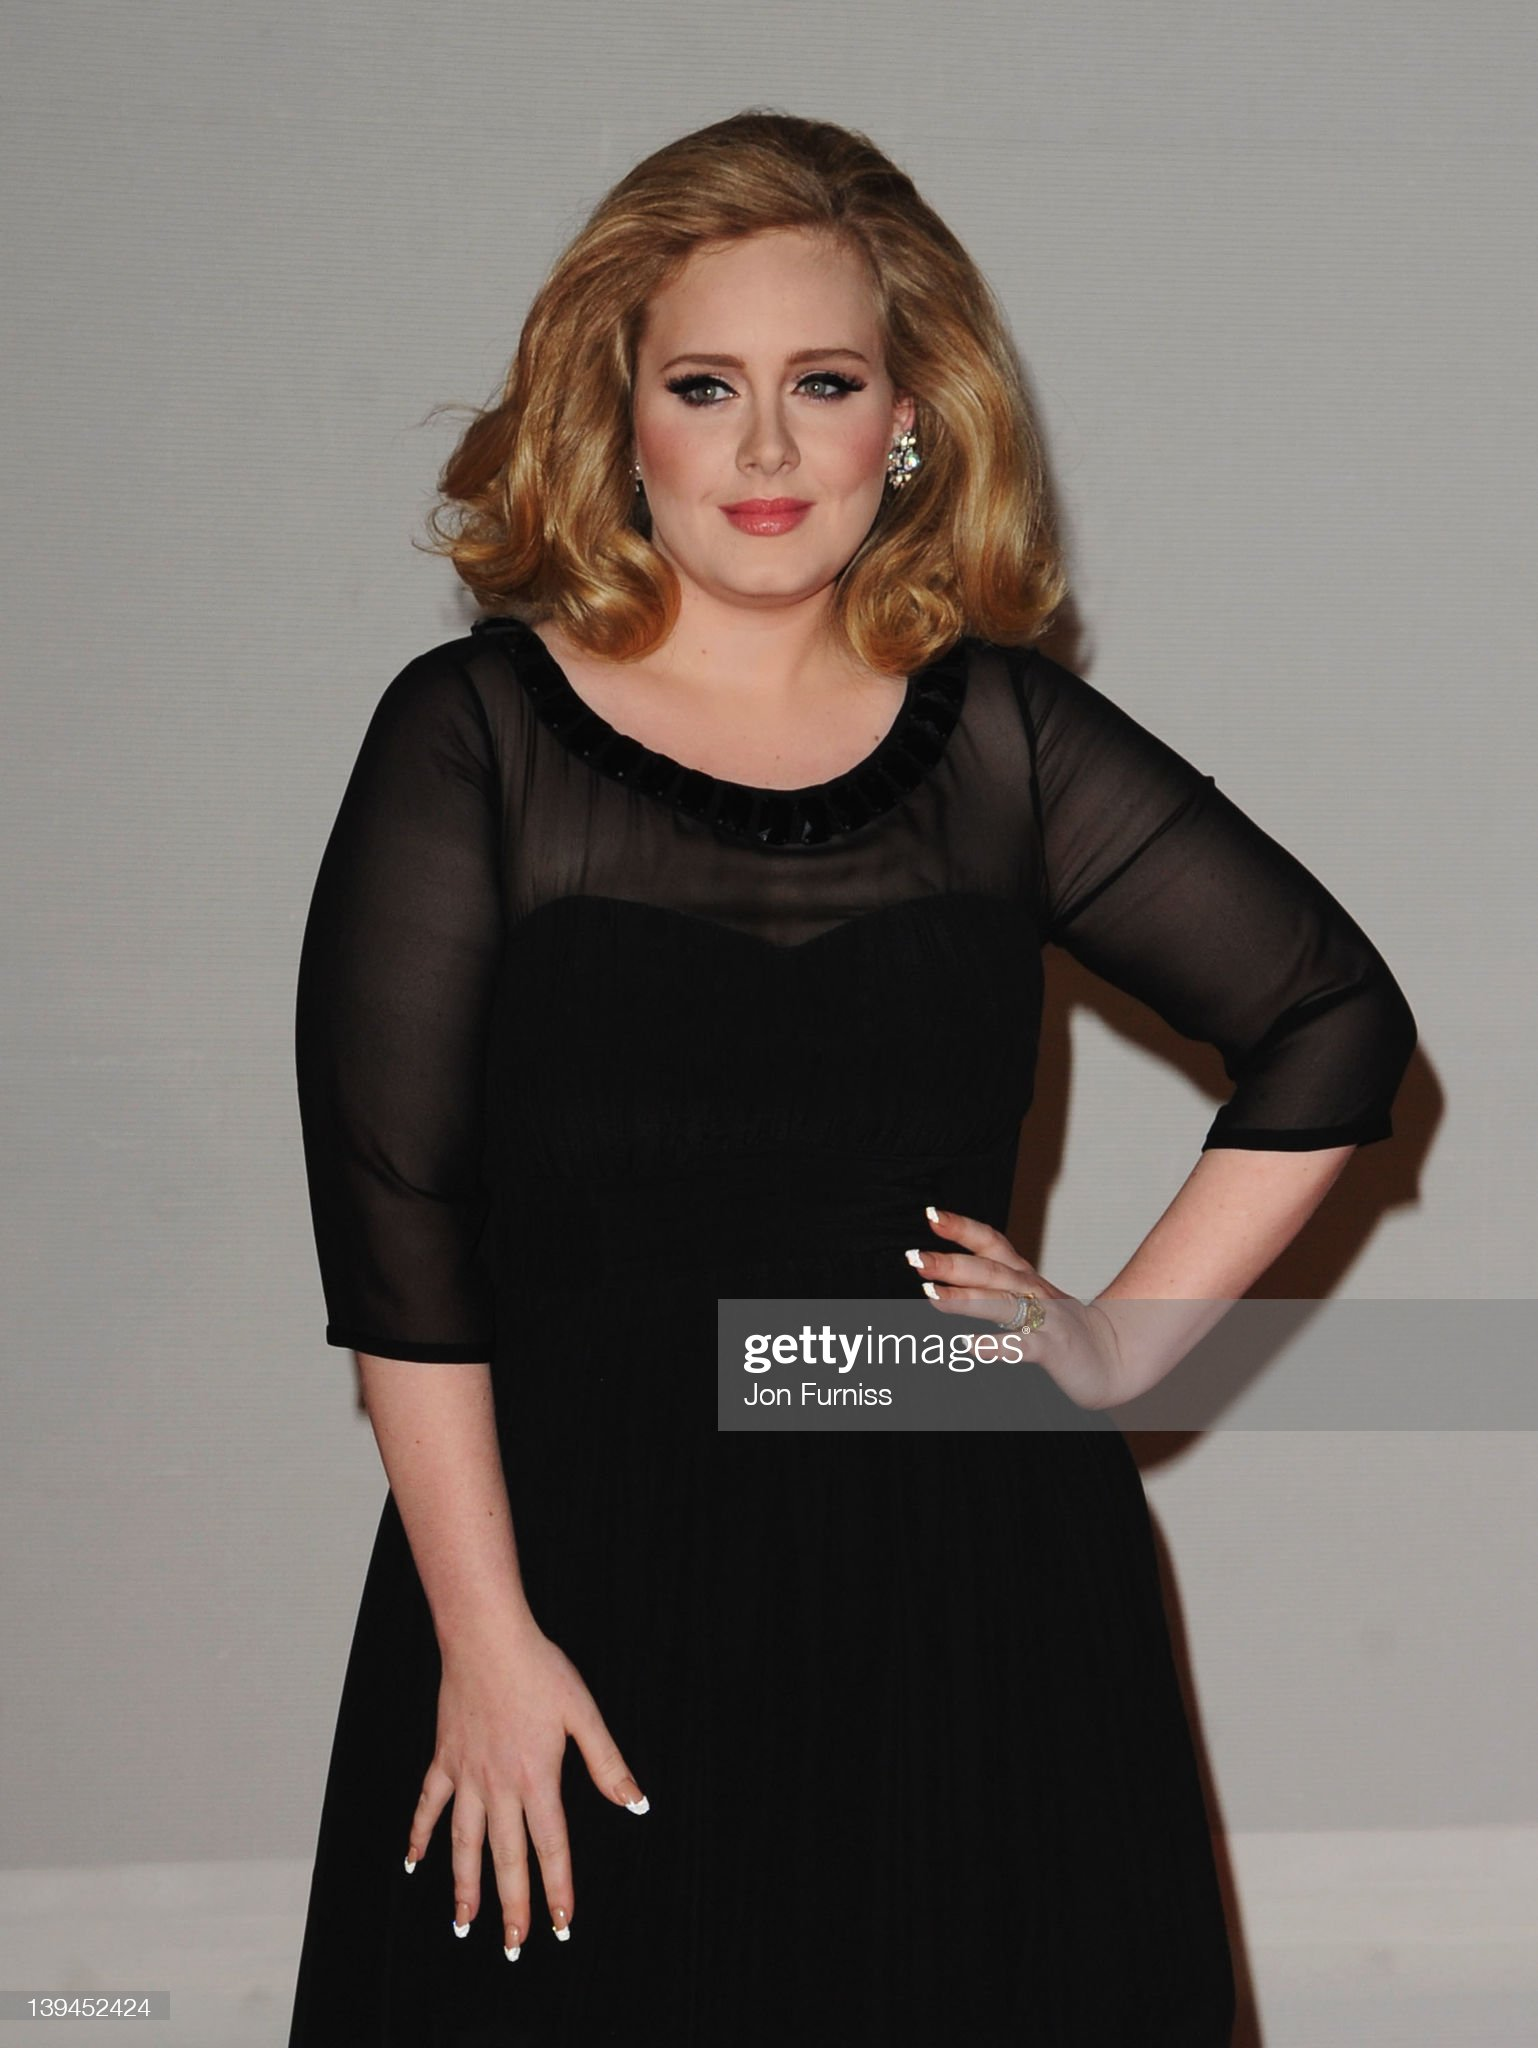 ¿Cuánto mide Adele? - Altura - Real height Singer-adele-attends-the-brit-awards-2012-at-the-o2-arena-on-february-picture-id139452424?s=2048x2048